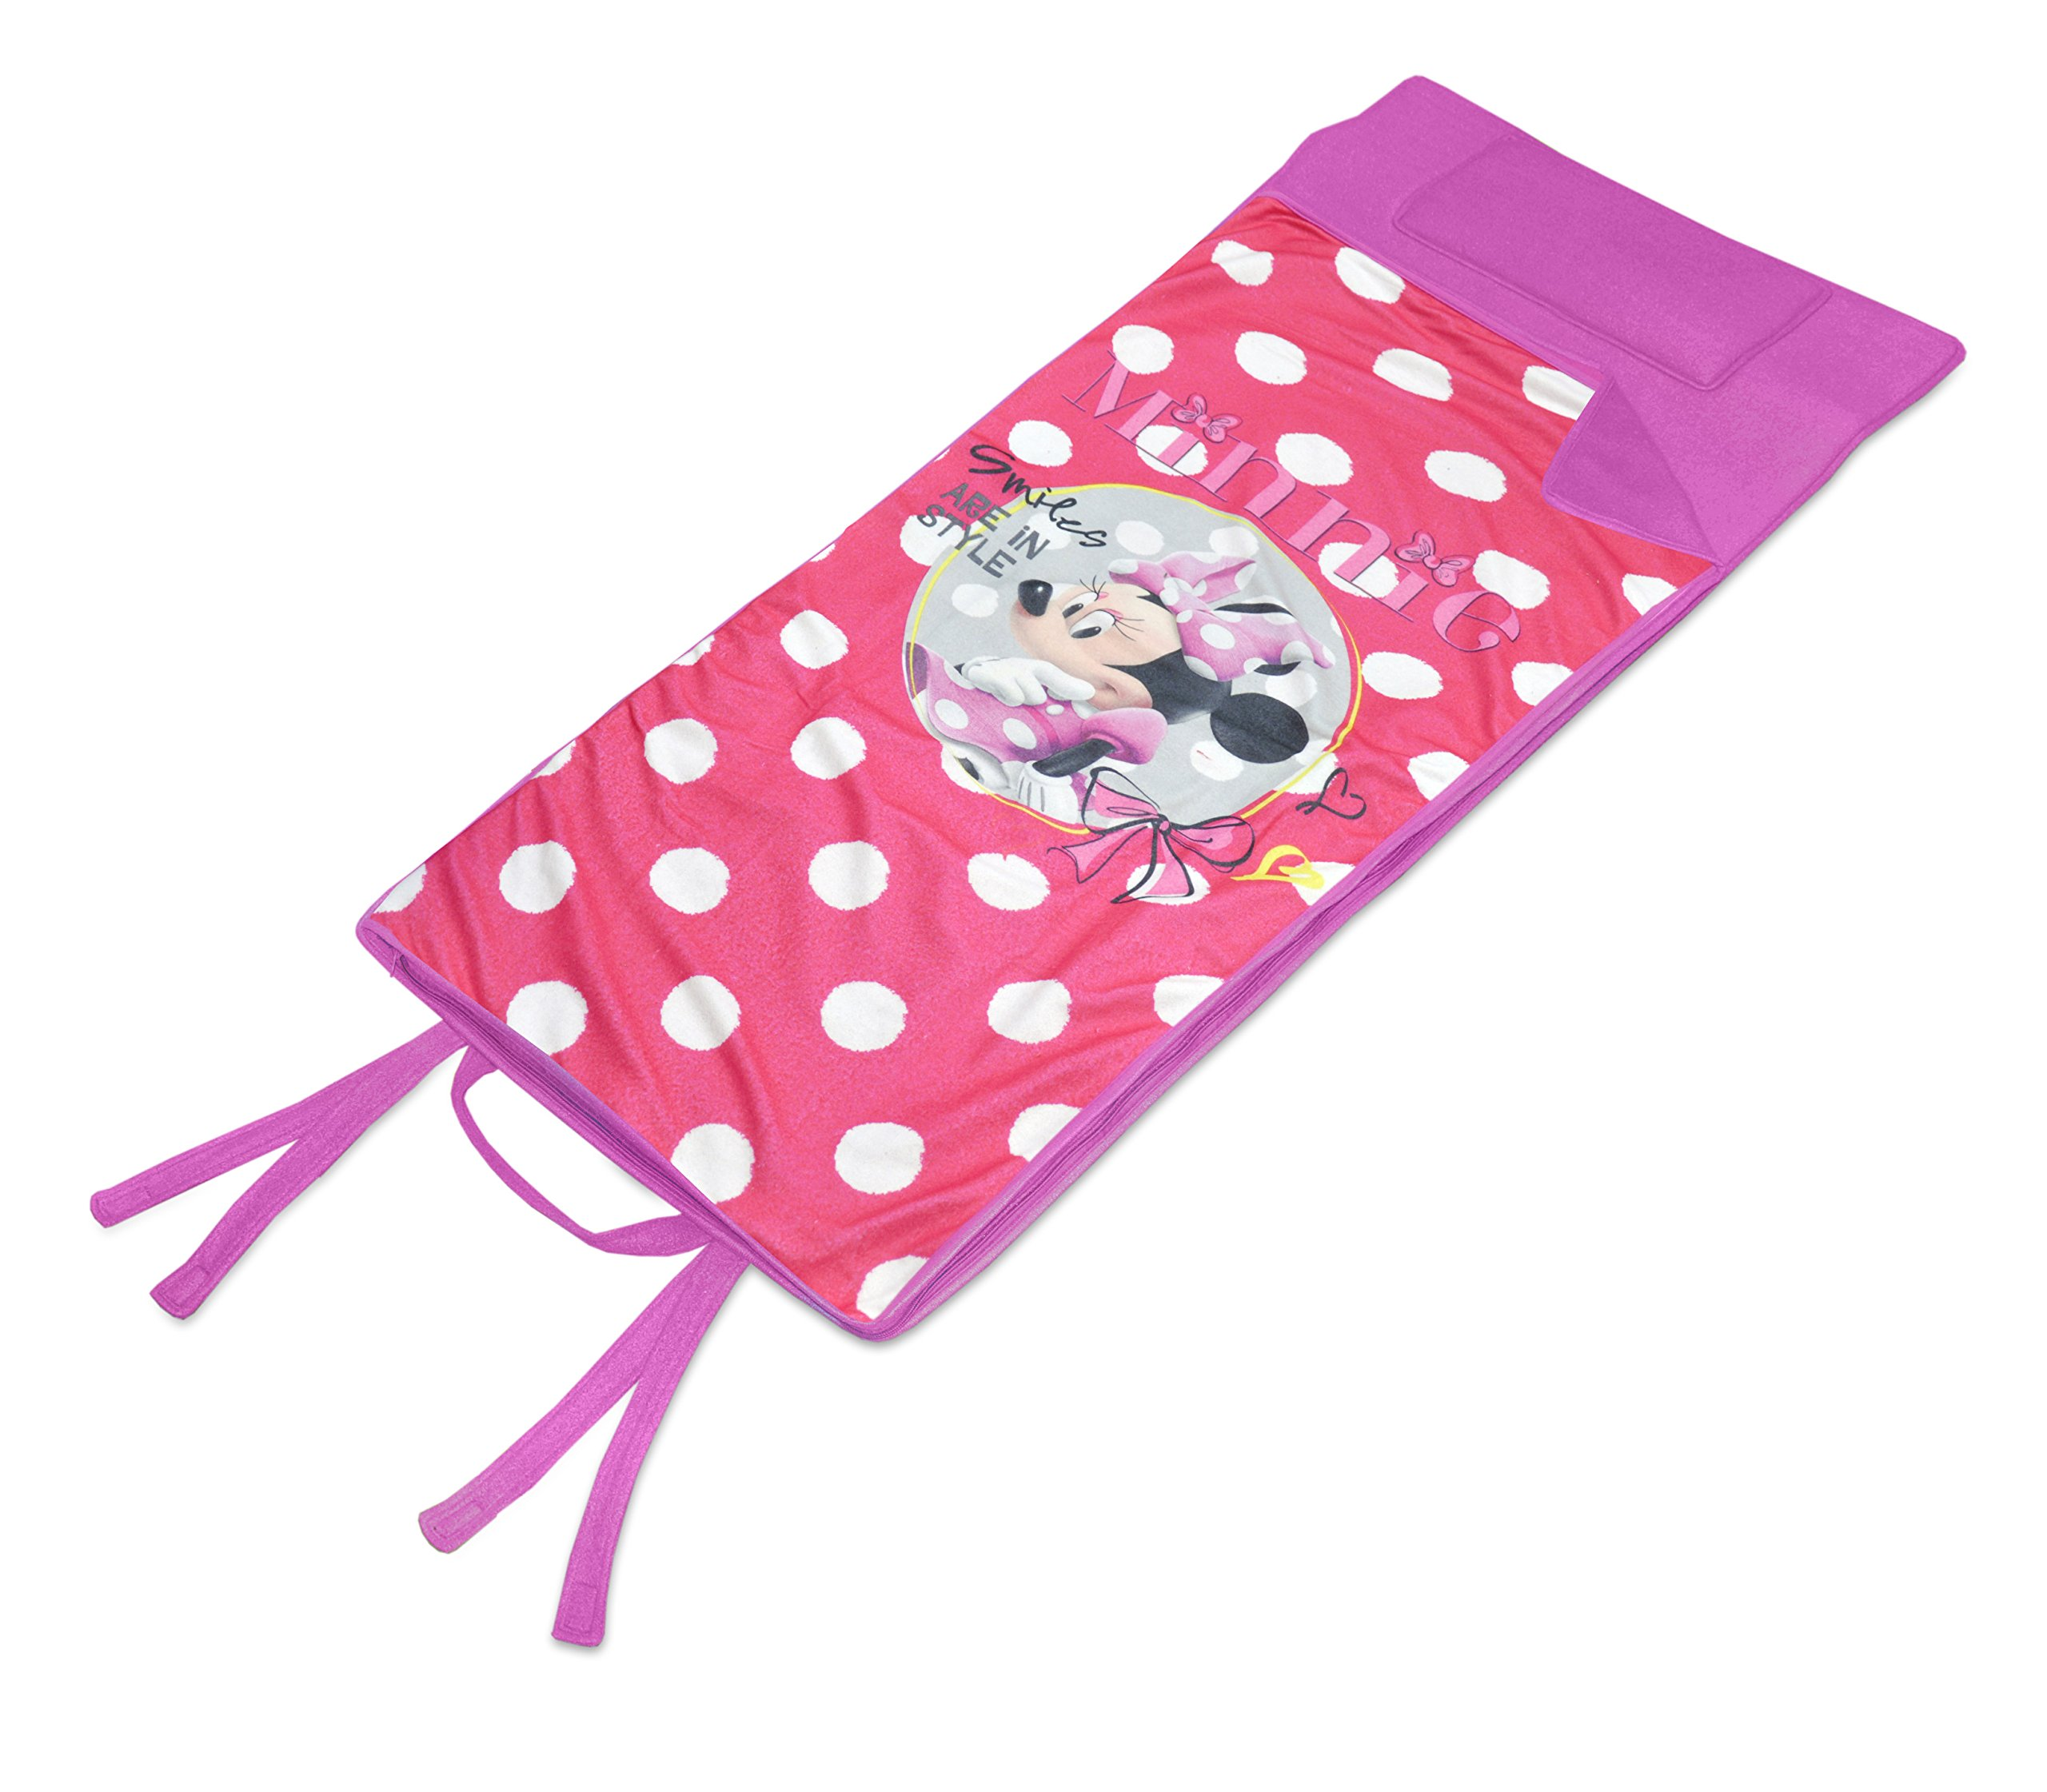 Disney Minnie Mouse Memory Foam Nap Mat